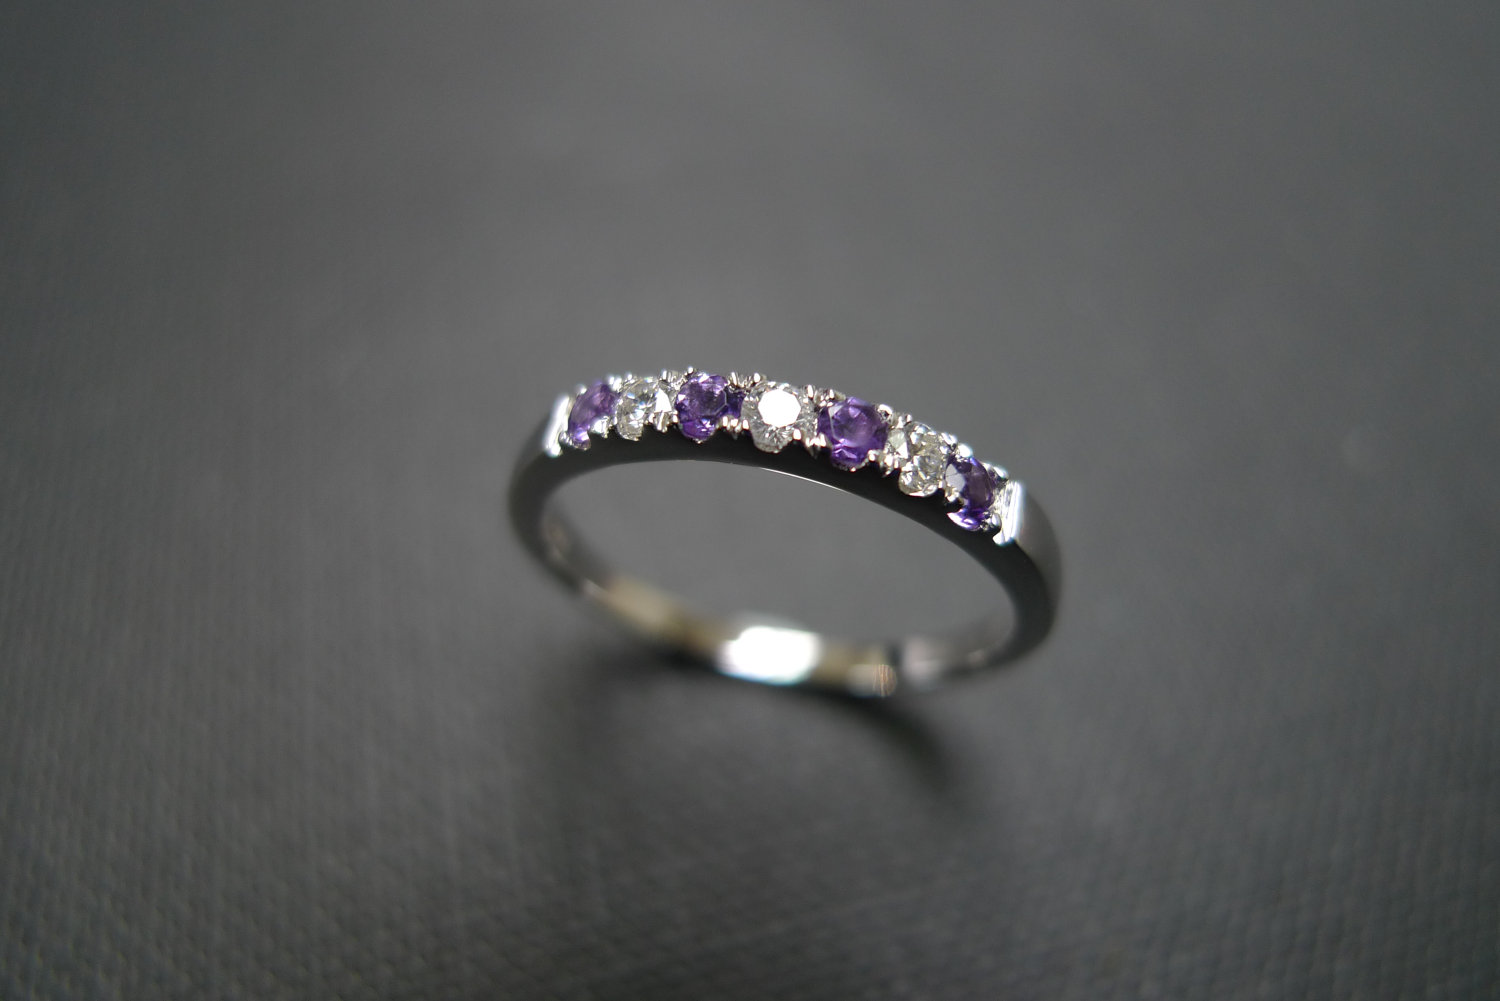 diamond wedding ring with amethyst in 14k white gold - Amethyst Wedding Ring